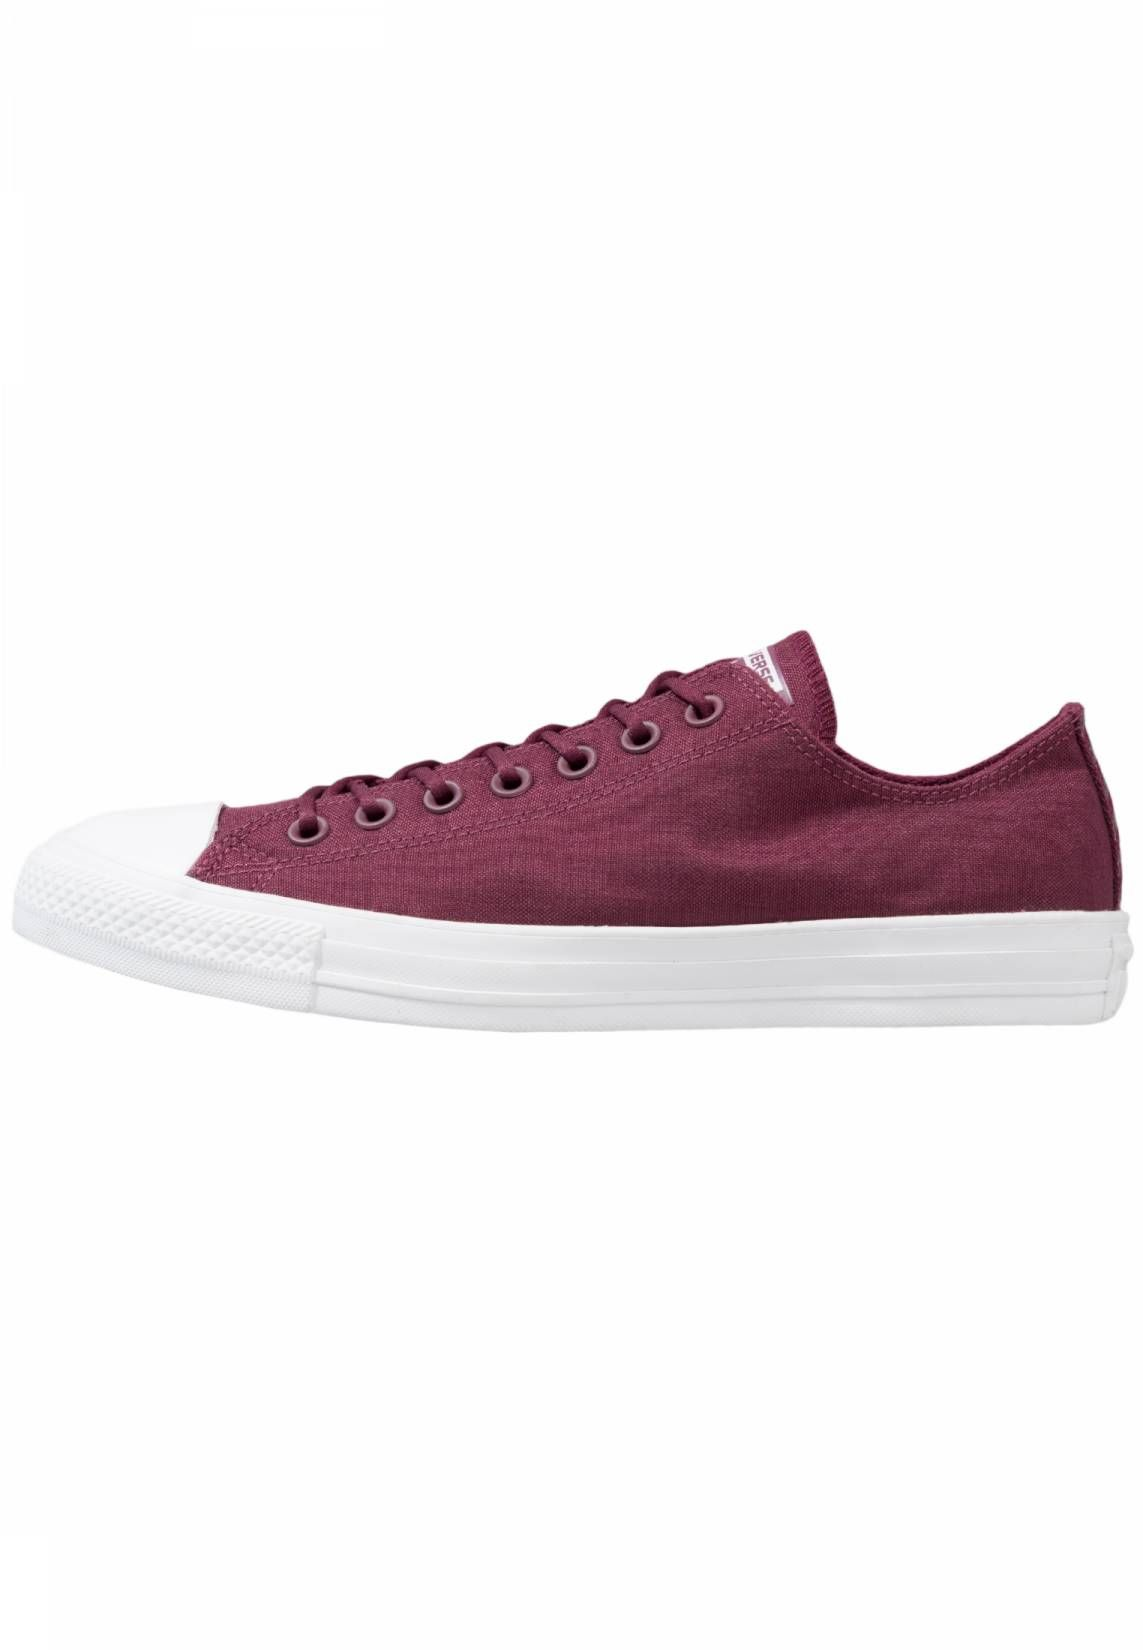 ed766283e26b Converse. CHUCK TAYLOR ALL STAR CORDURA - OX - Zapatillas - dark  sangria white